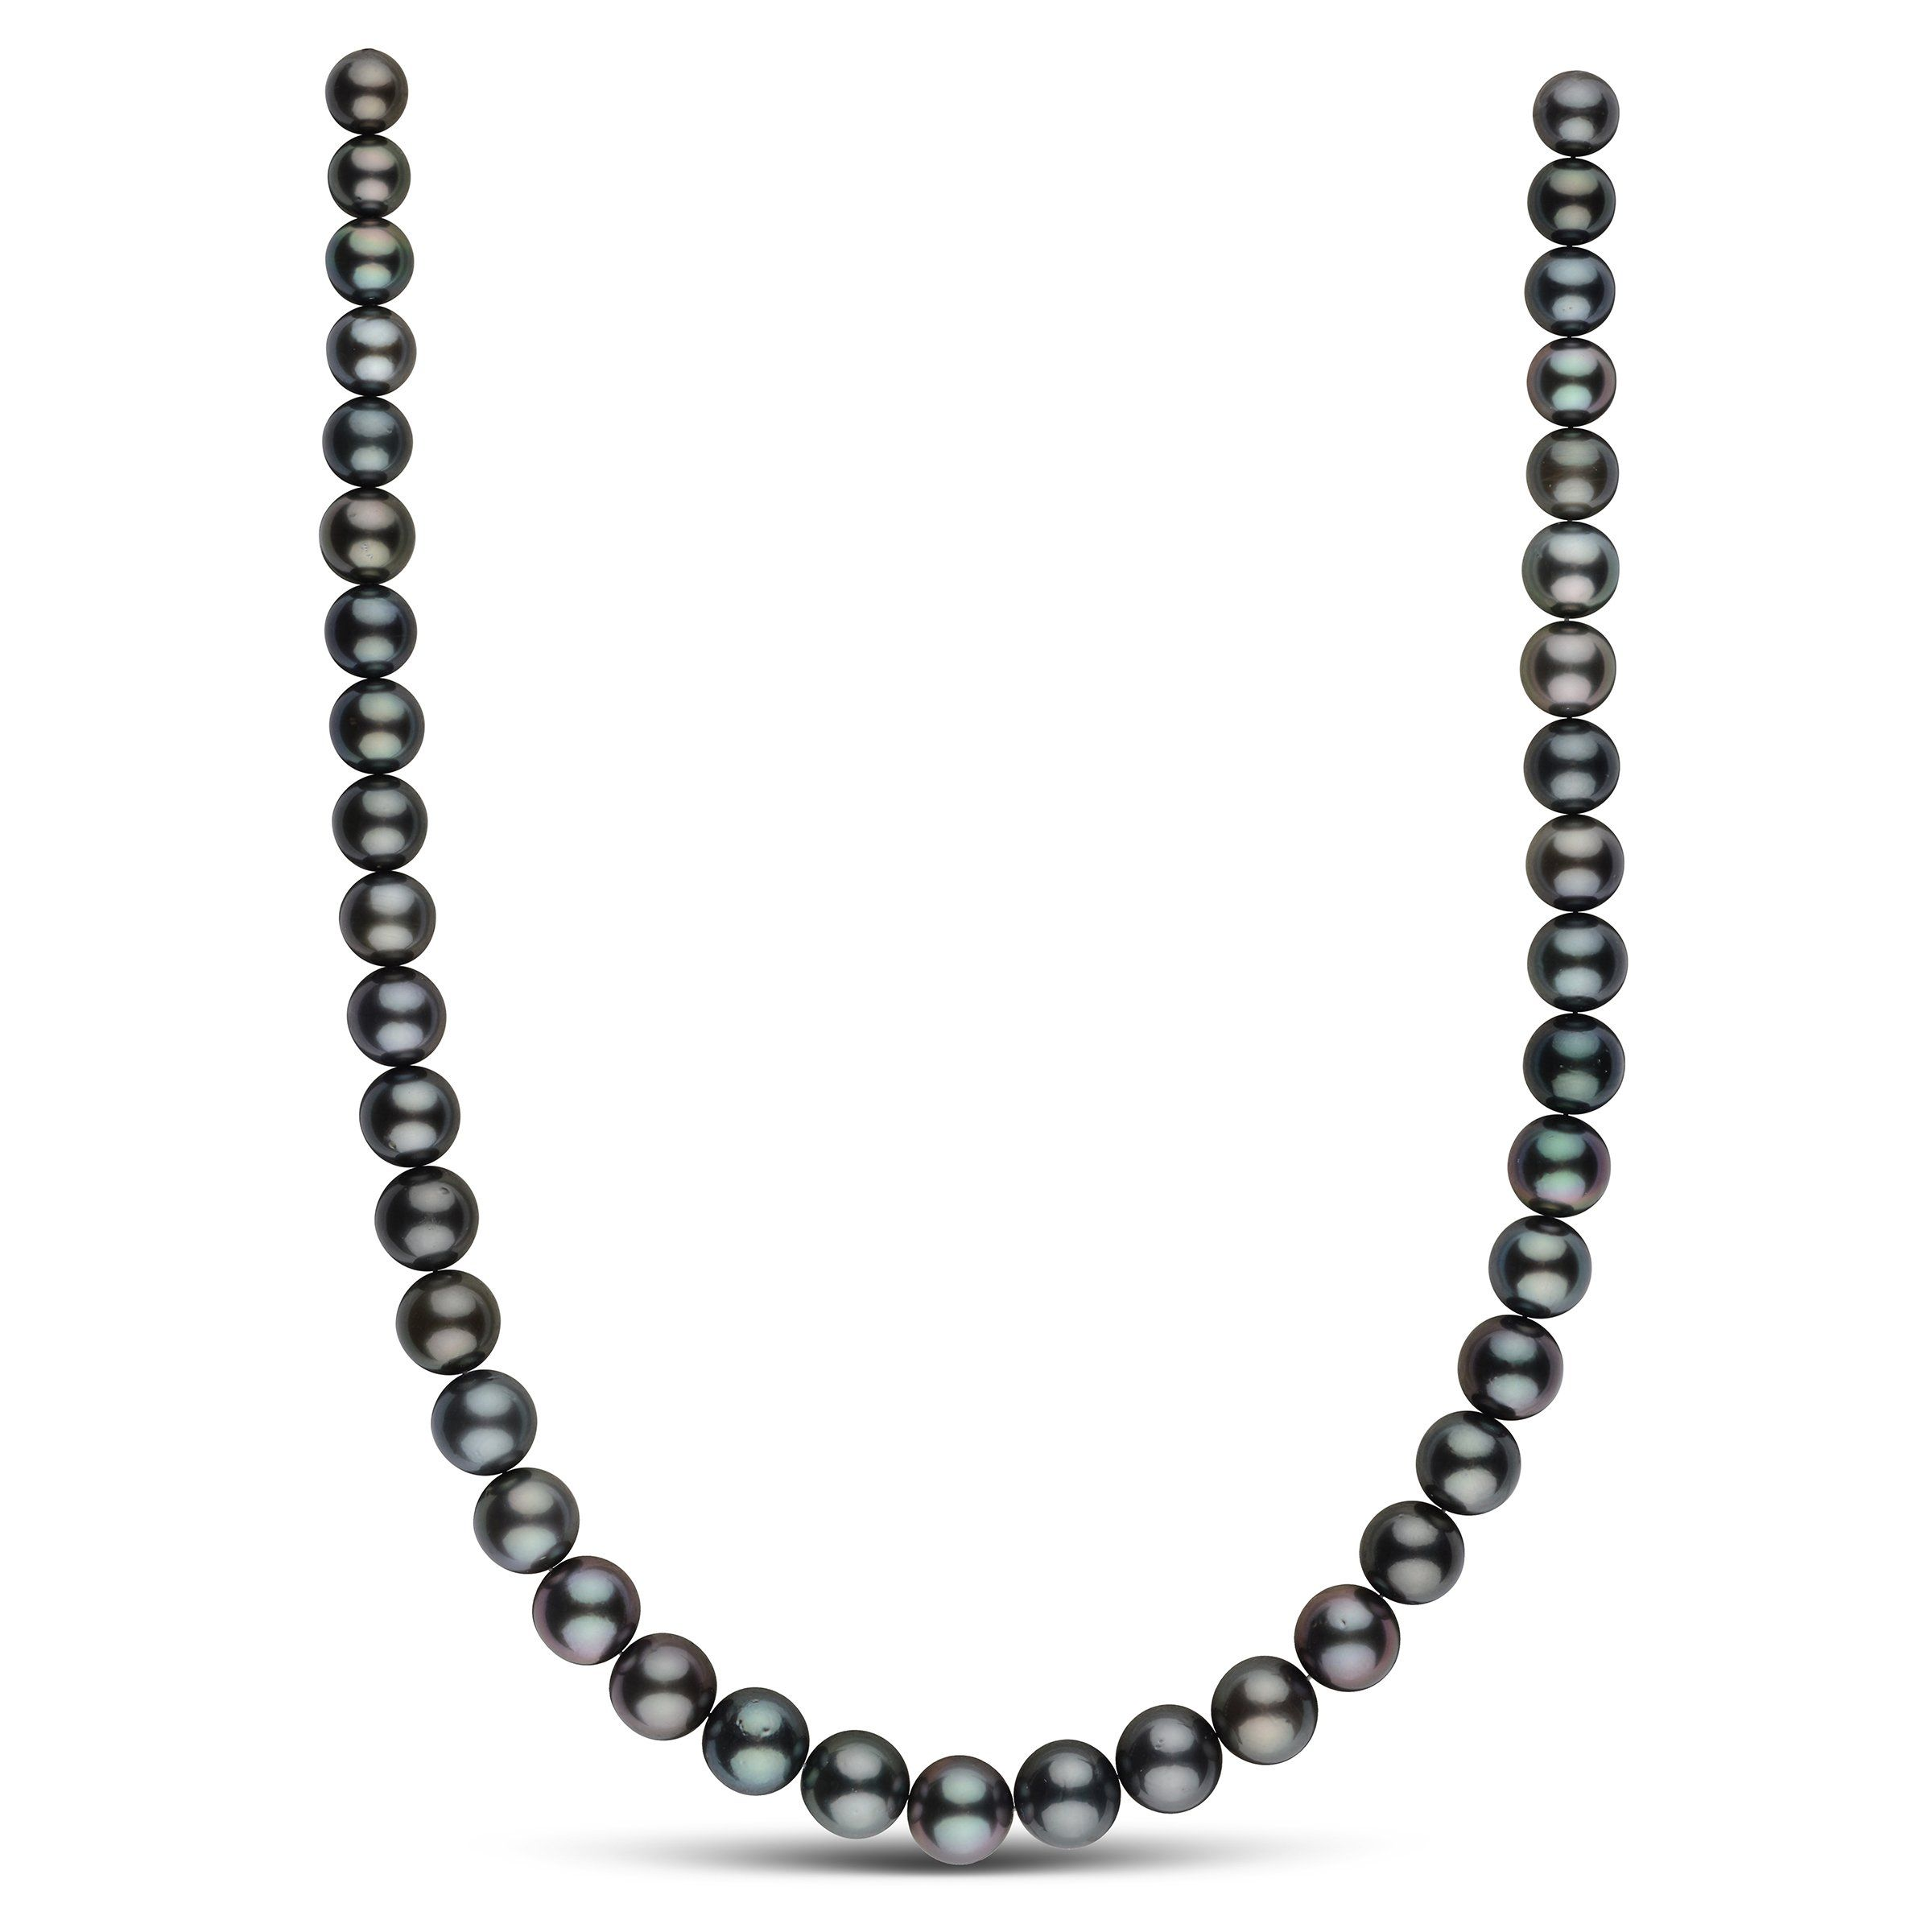 8.4-11.0 mm AA+ Round Tahitian Pearl Necklace